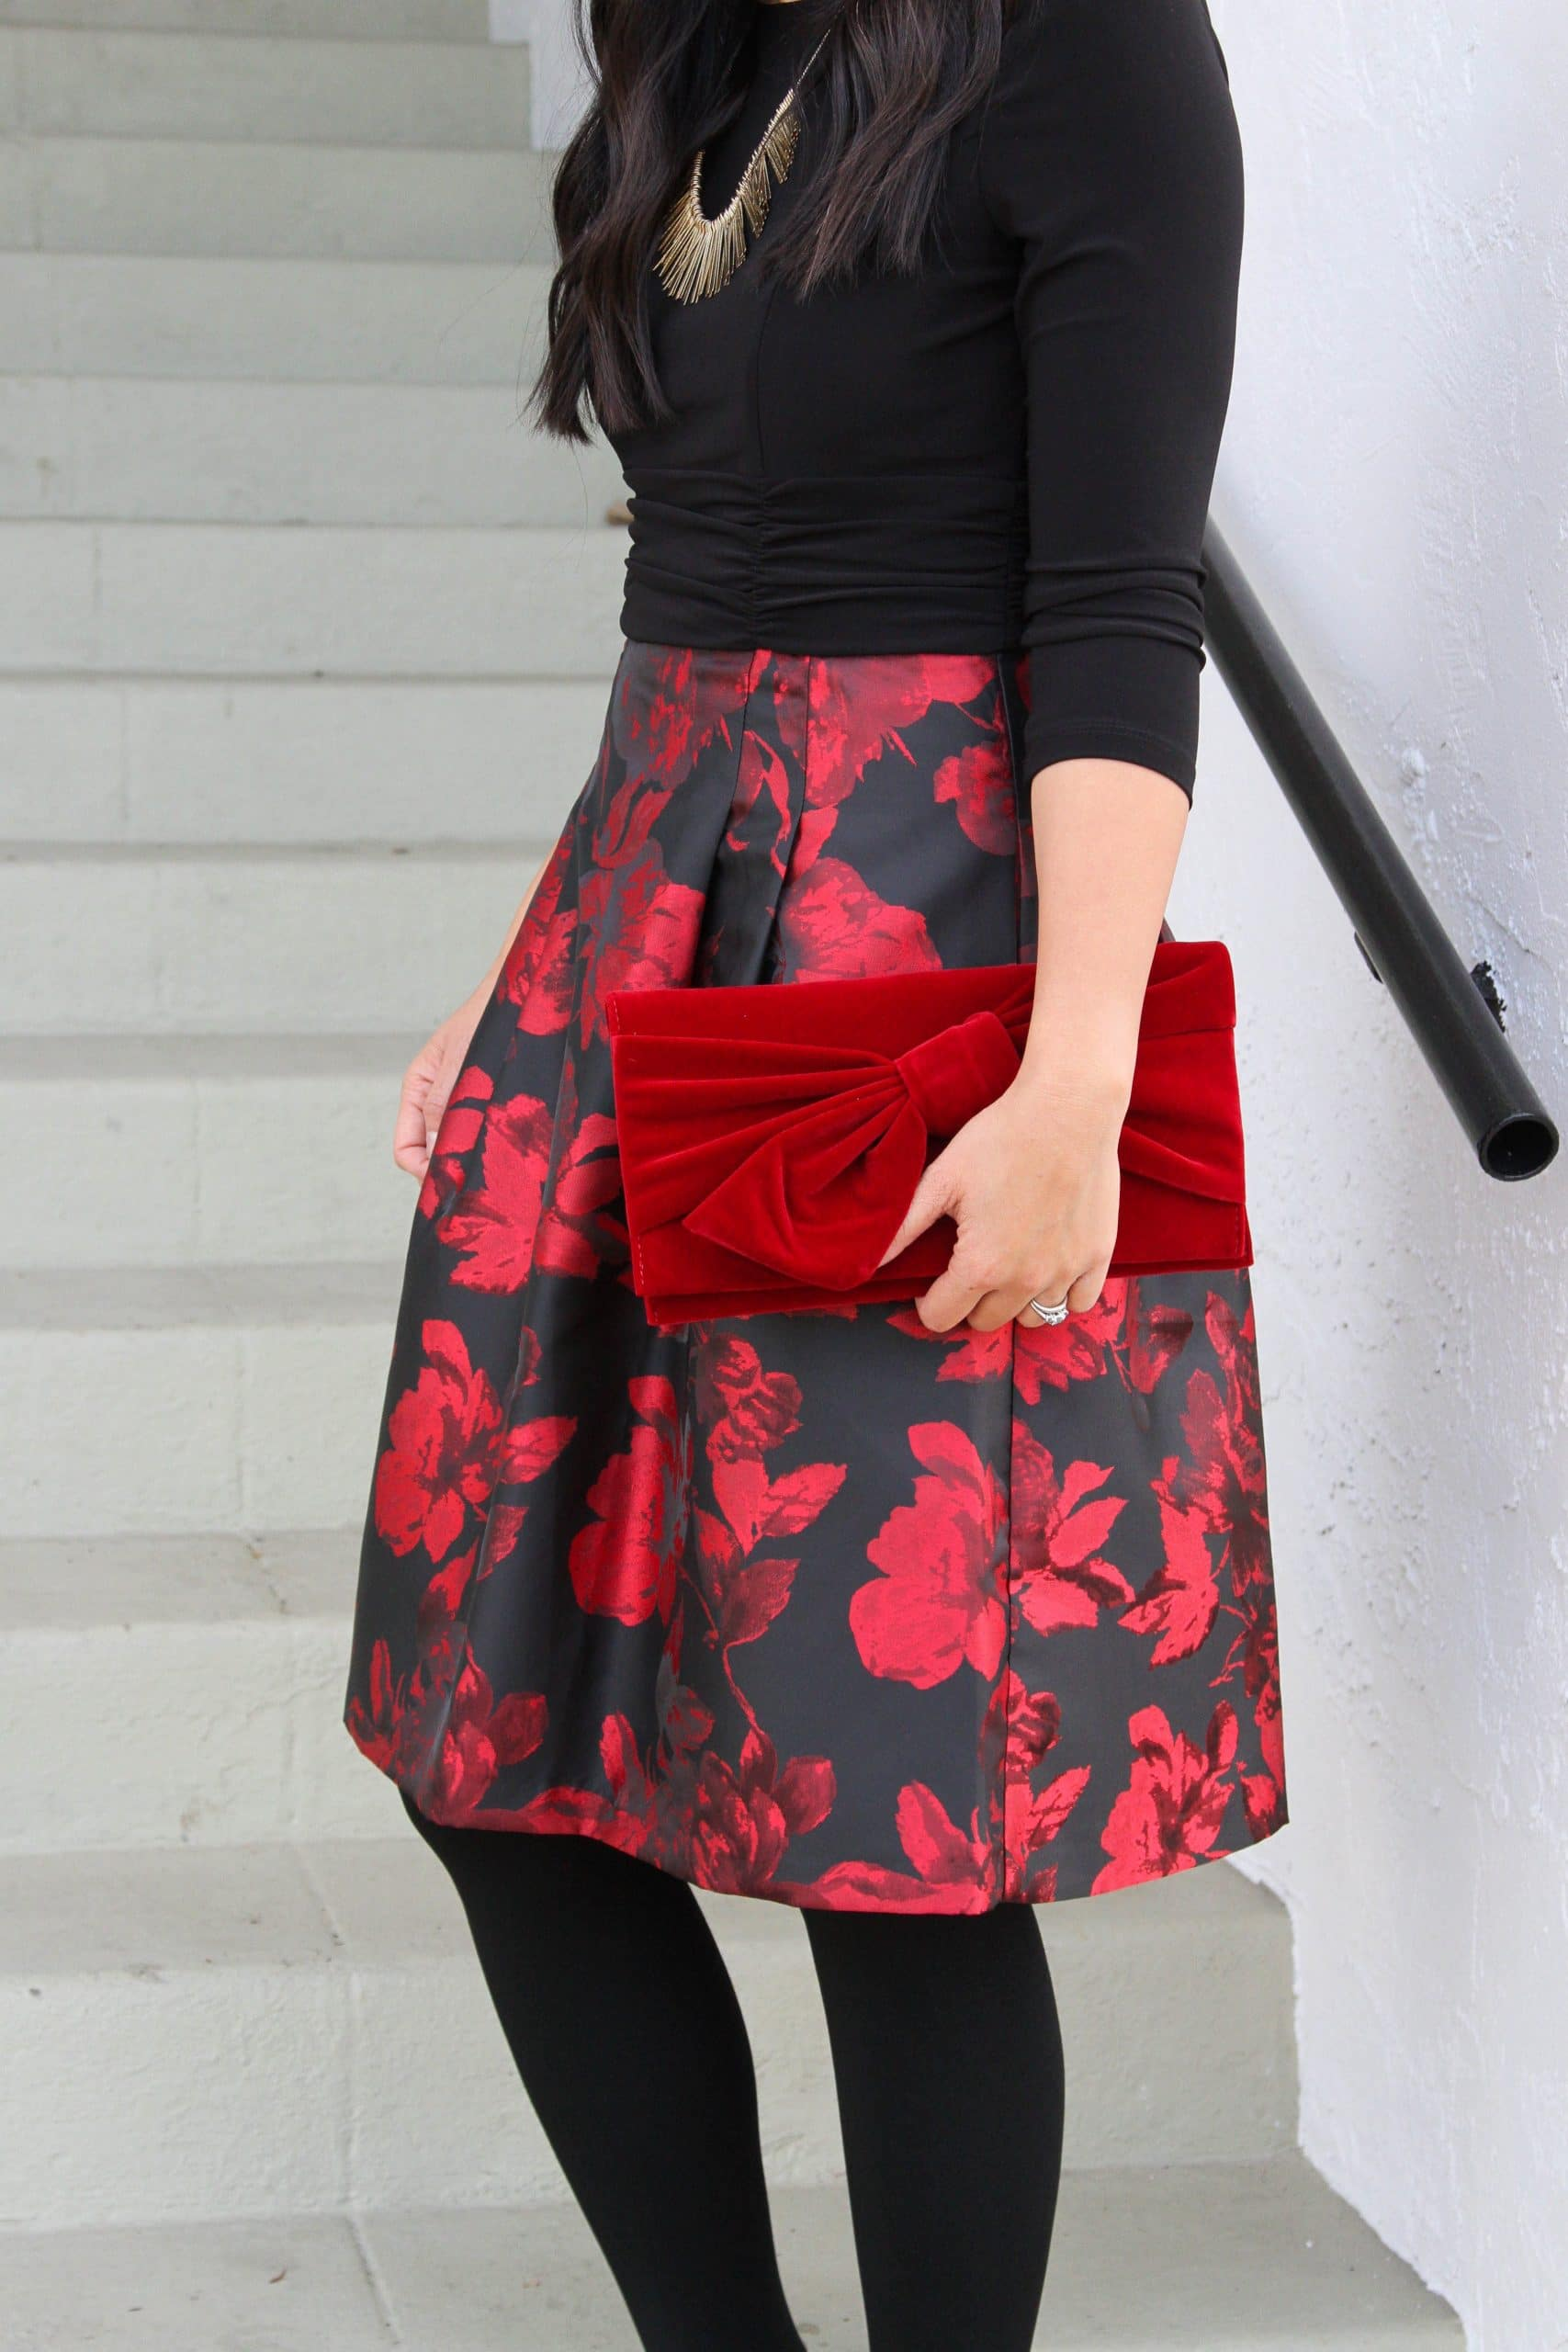 black flats + red and black floral dress + black tights